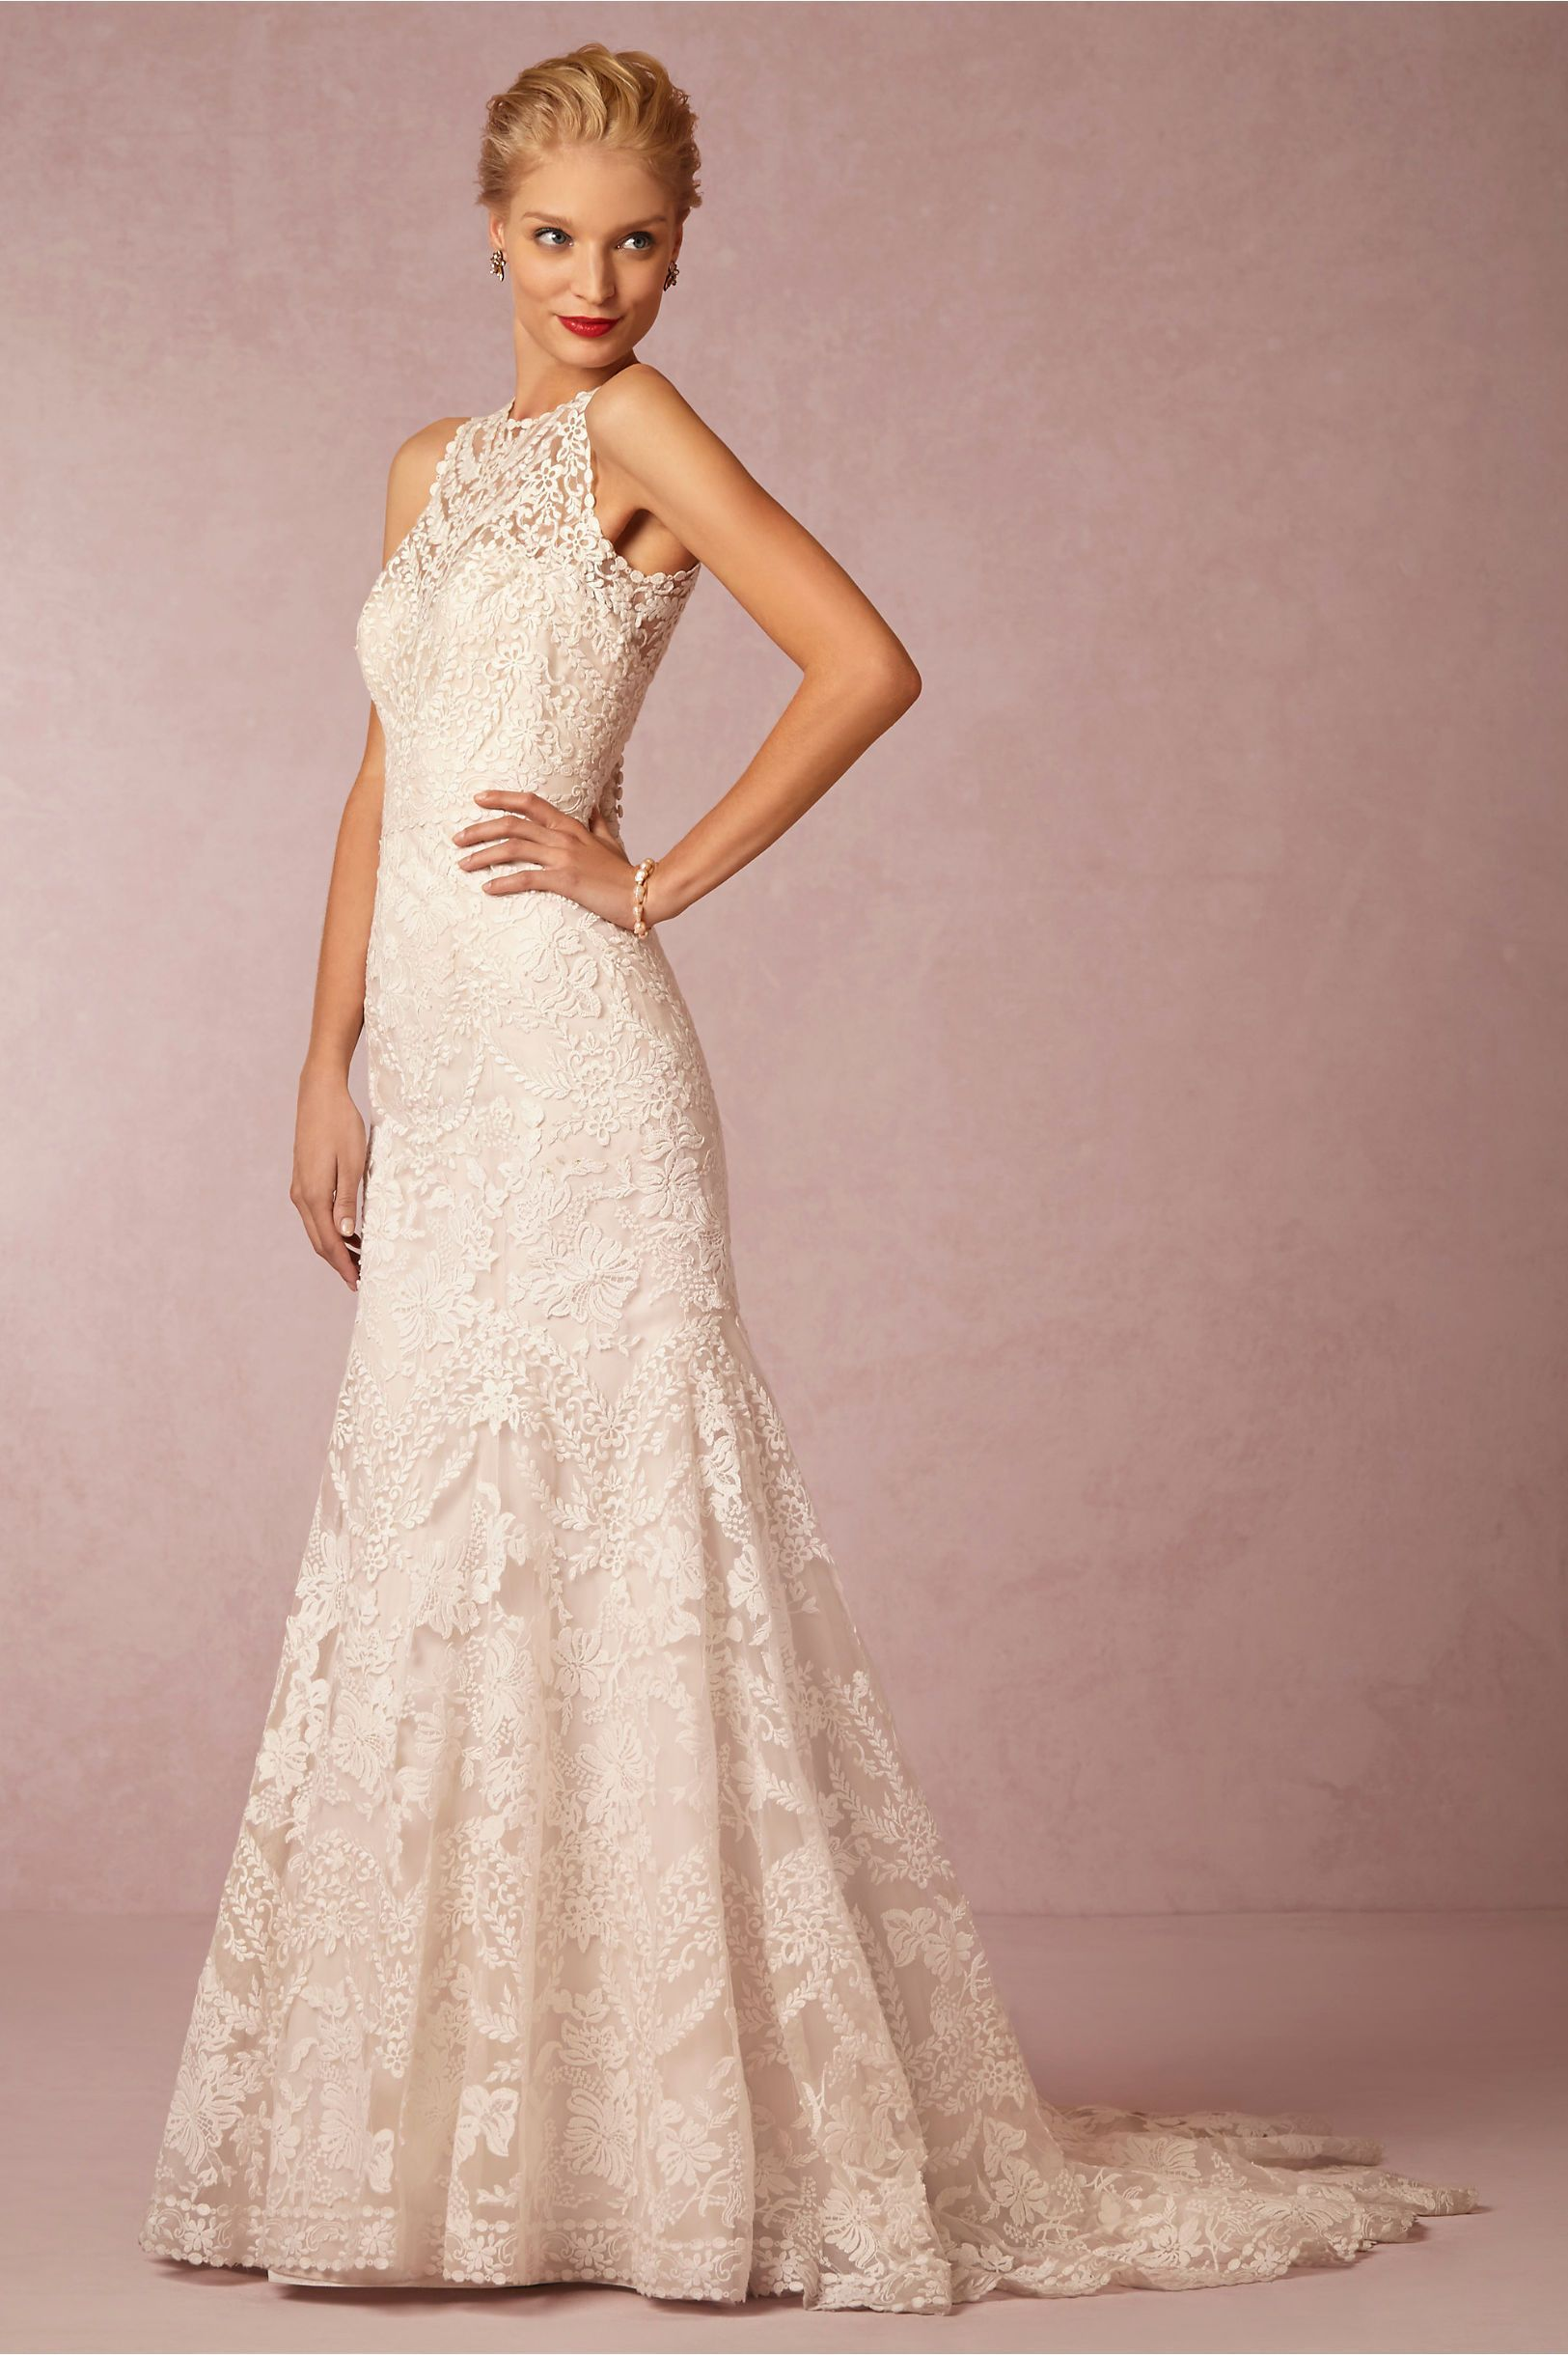 Previously owned wedding dresses  Used BHLDN Adalynn Size  for  You saved  Off Retail Find